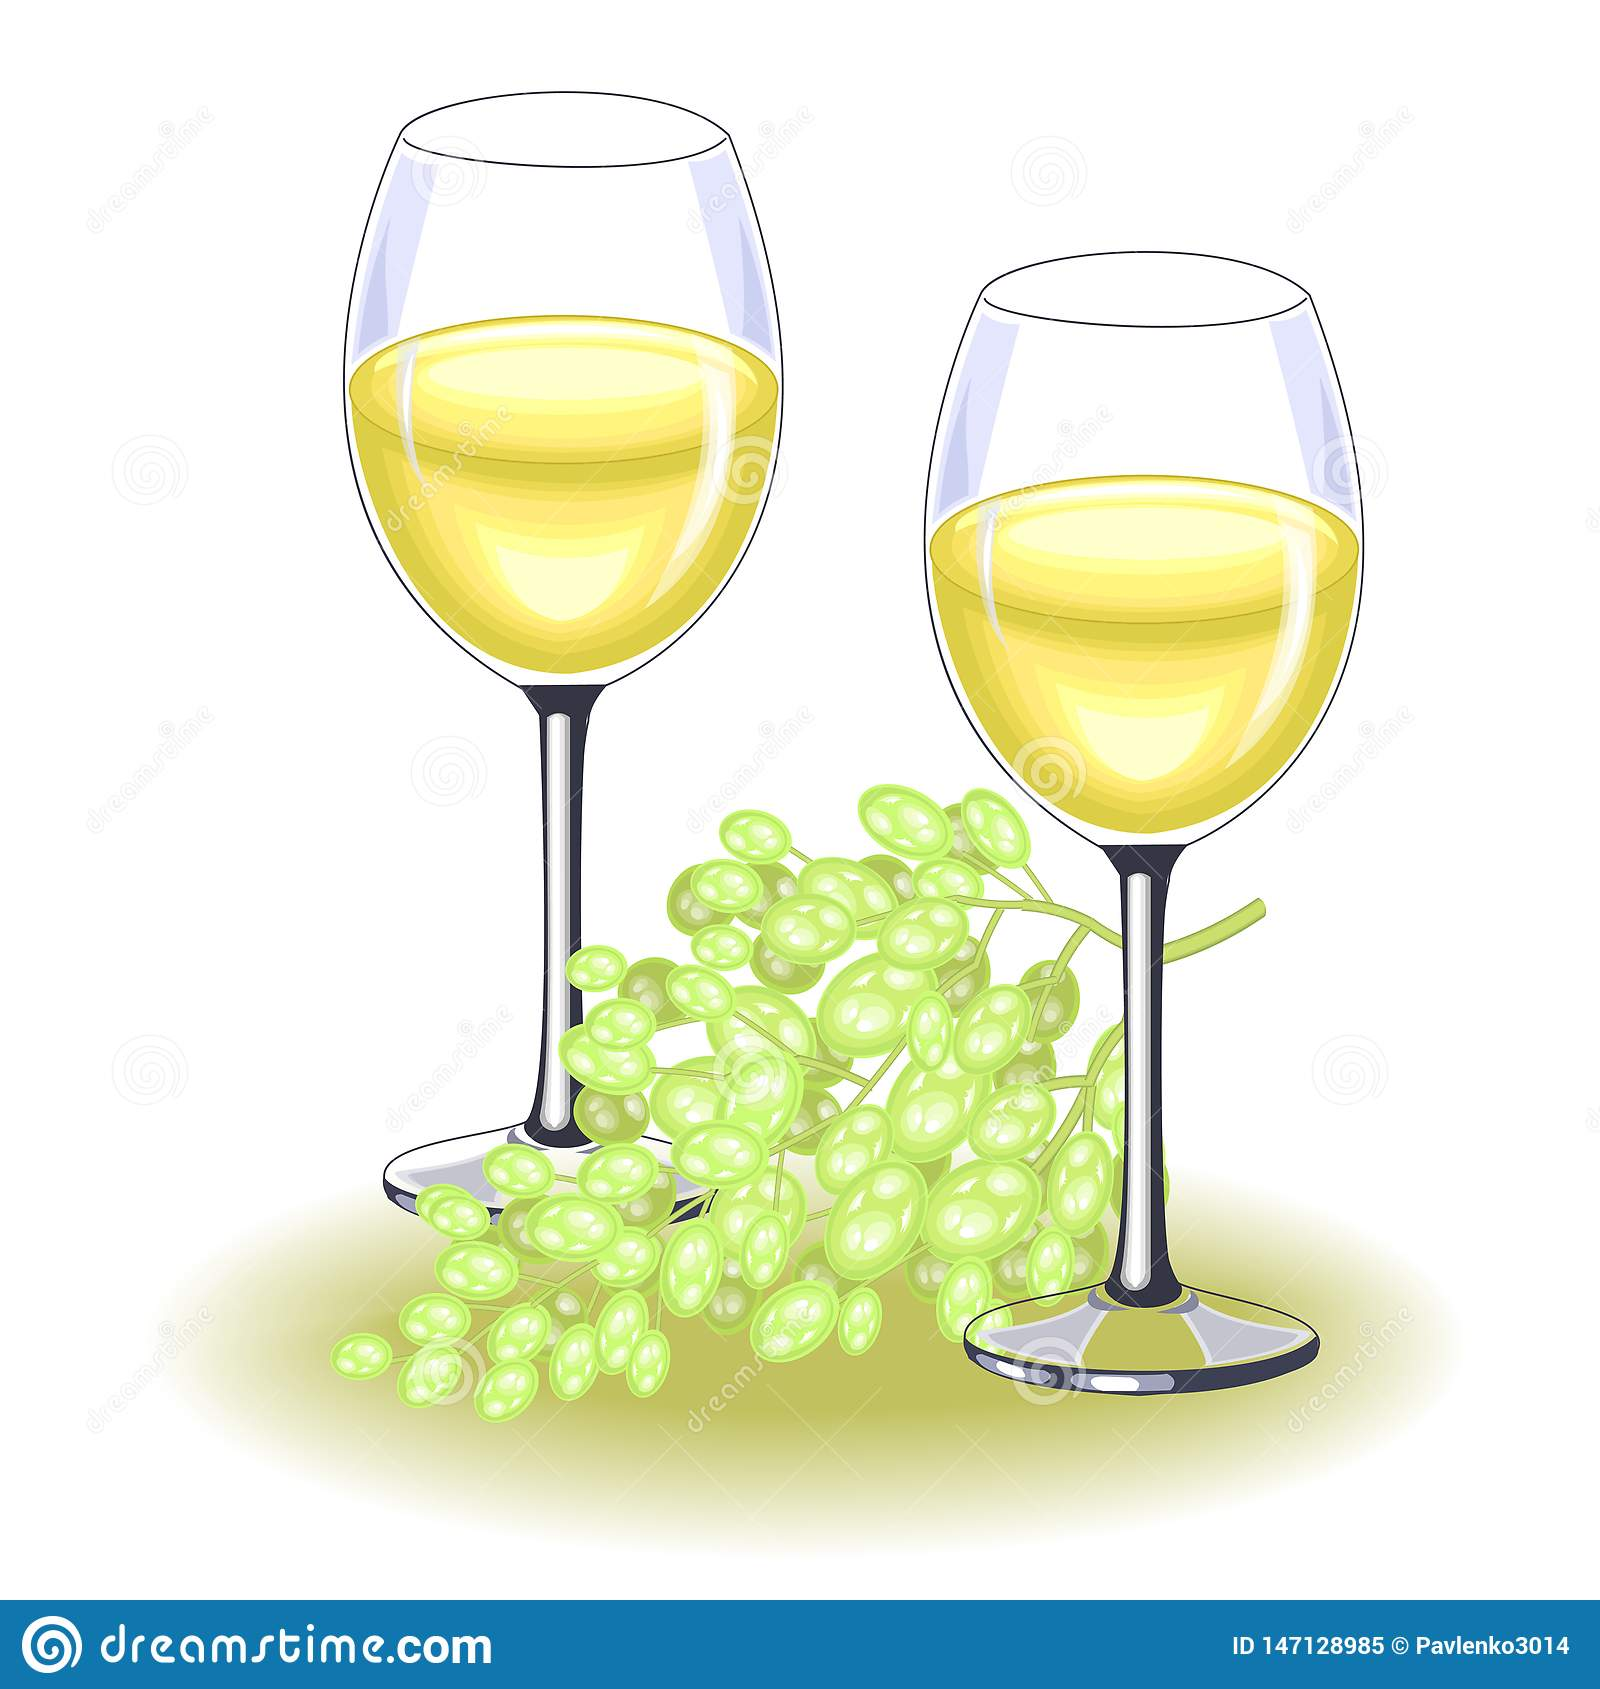 Two beautiful crystal glasses with delicious white wine. A ripe bunch of grapes. Decoration of the festive table. Vector